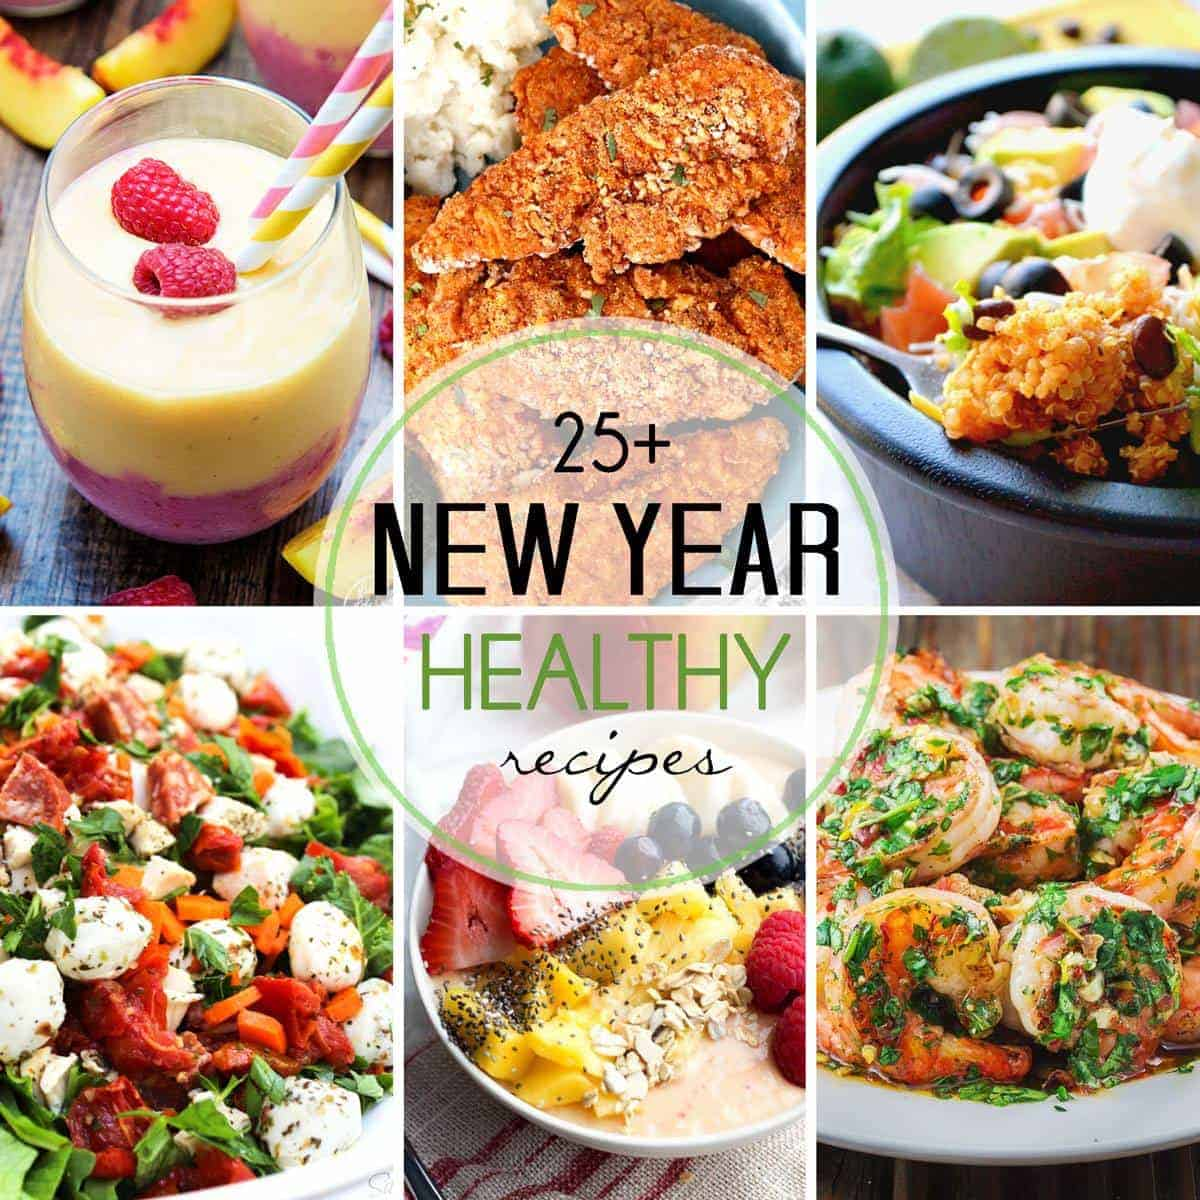 The recipes you need to make a new start in a New Year! Tons of healthier options that taste just as great :)